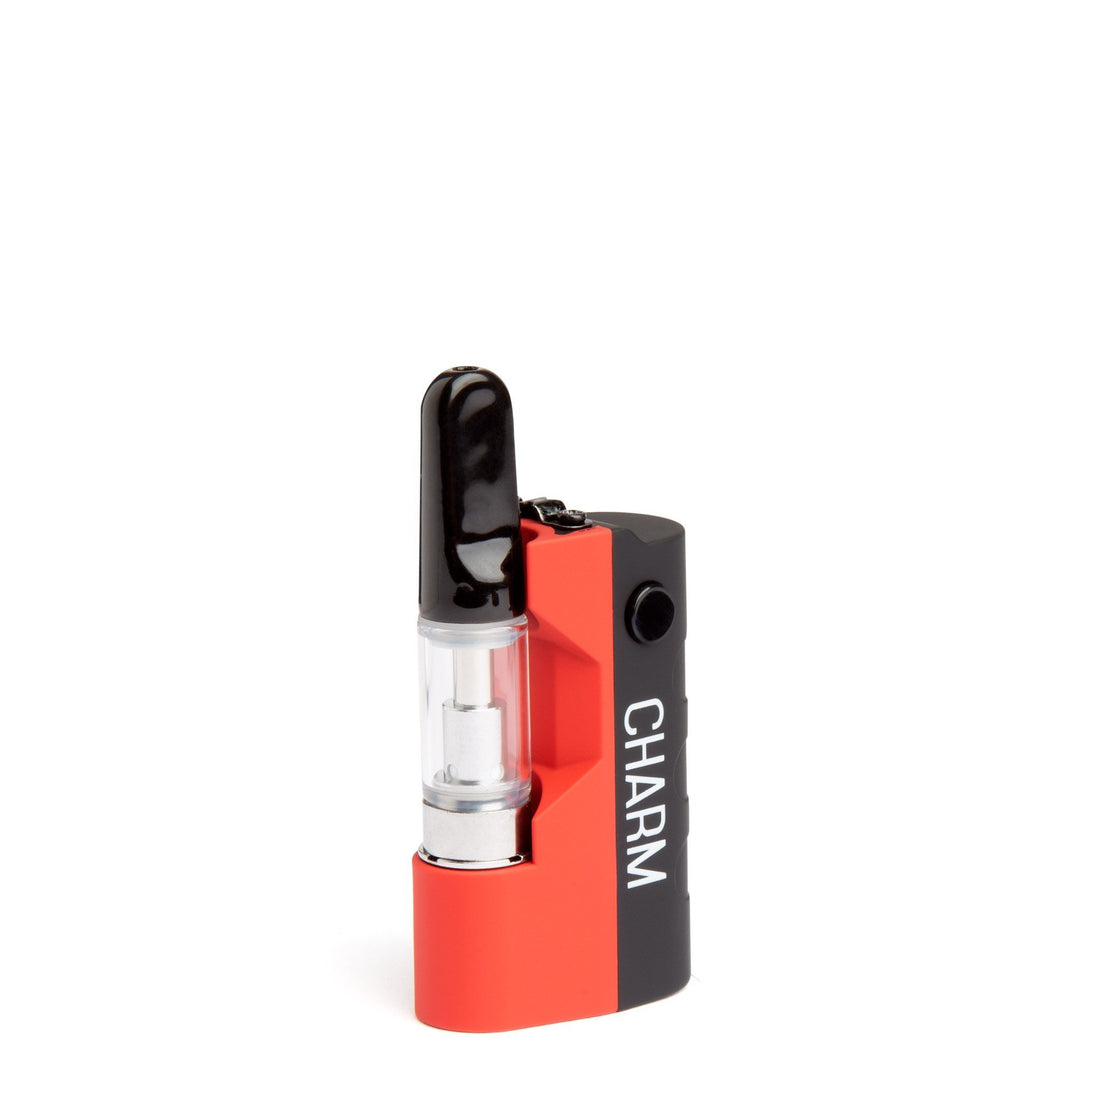 Randy's Charm VV Cartridge Vape Battery - 420 Science - The most trusted online smoke shop.